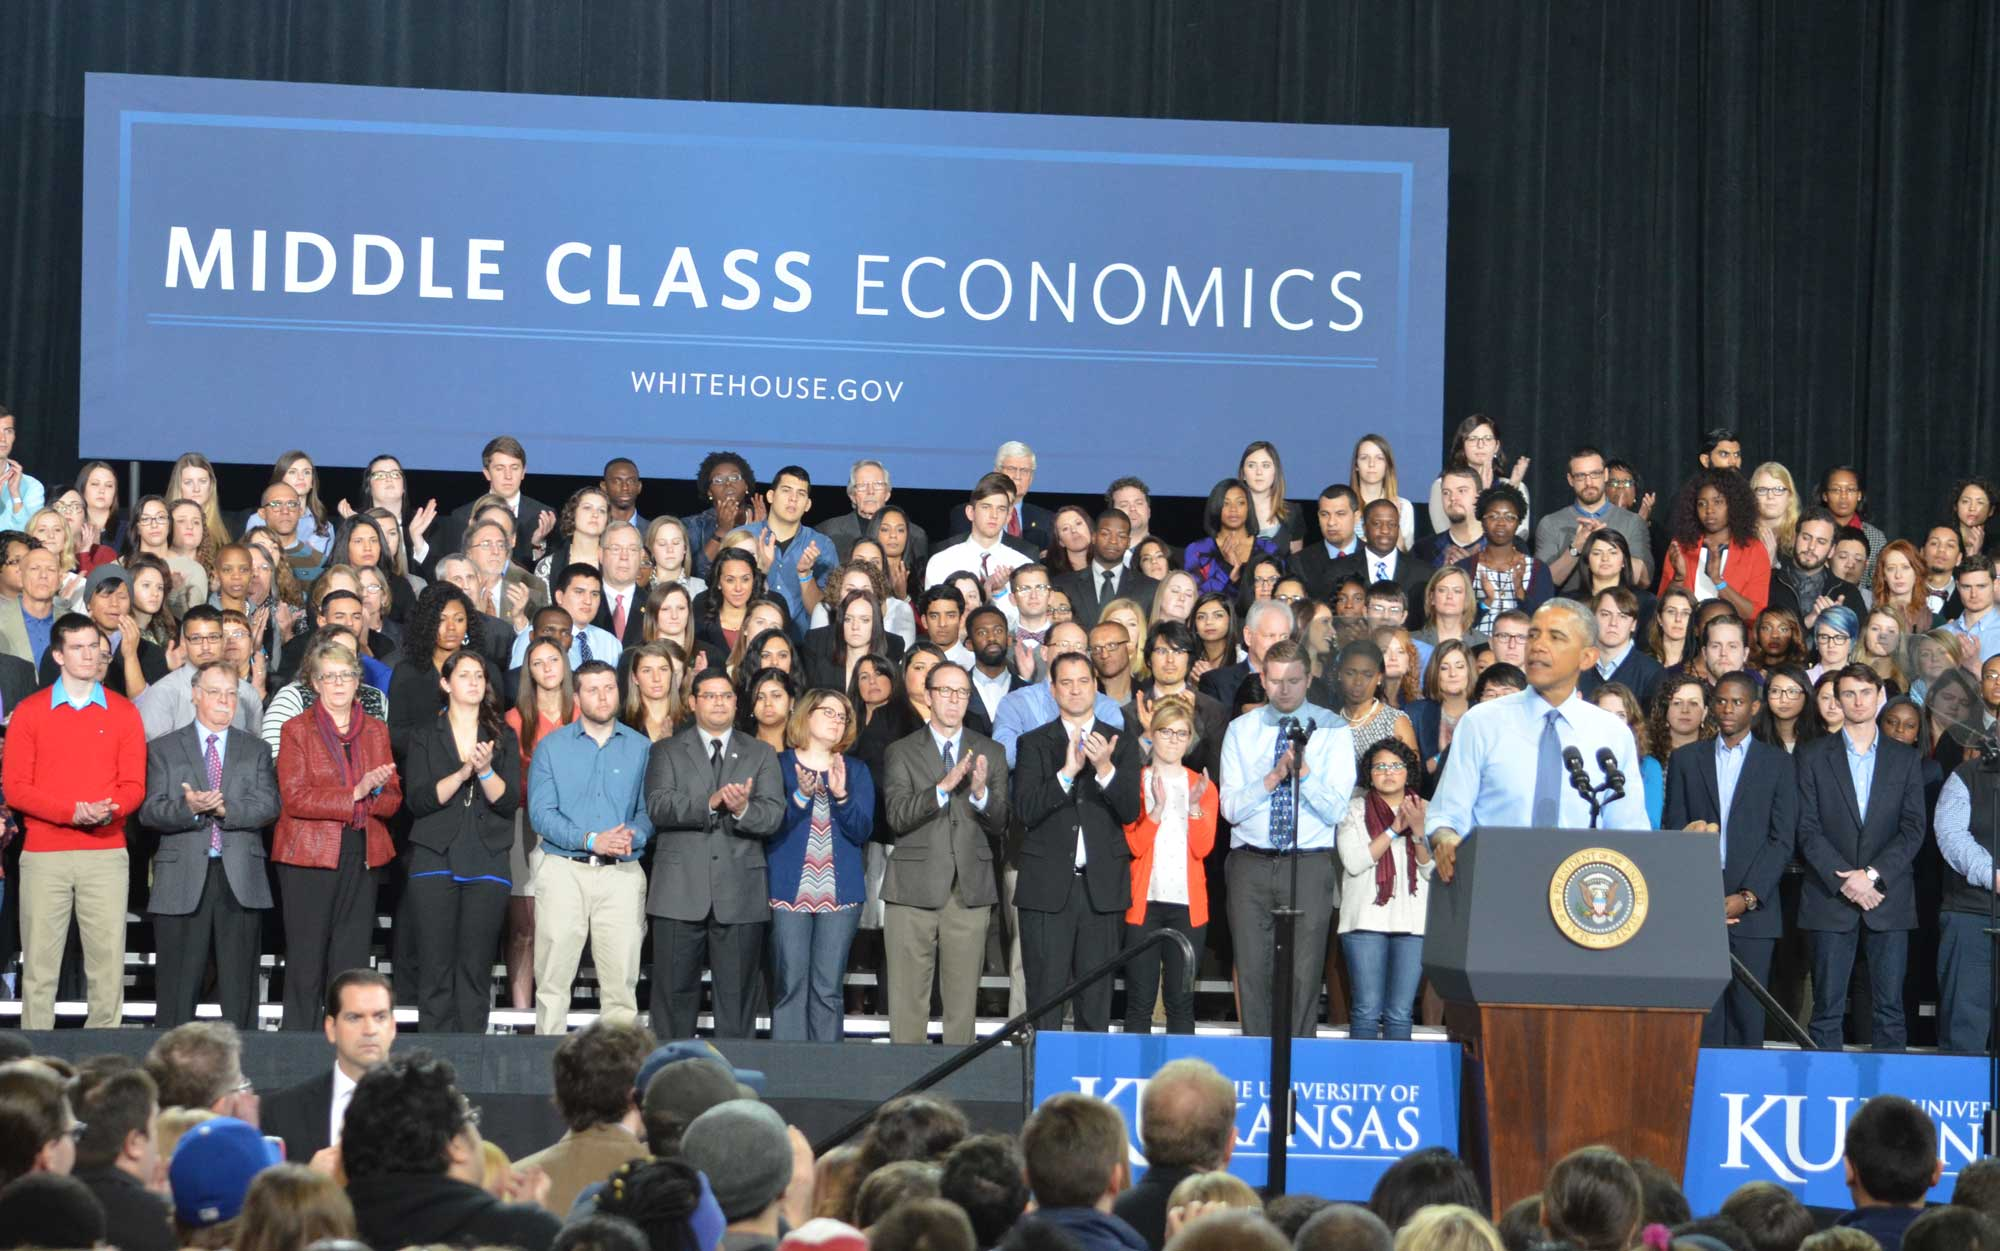 Obama talks about middle class economics. (Photo by Sheri Hamilton/KPR)